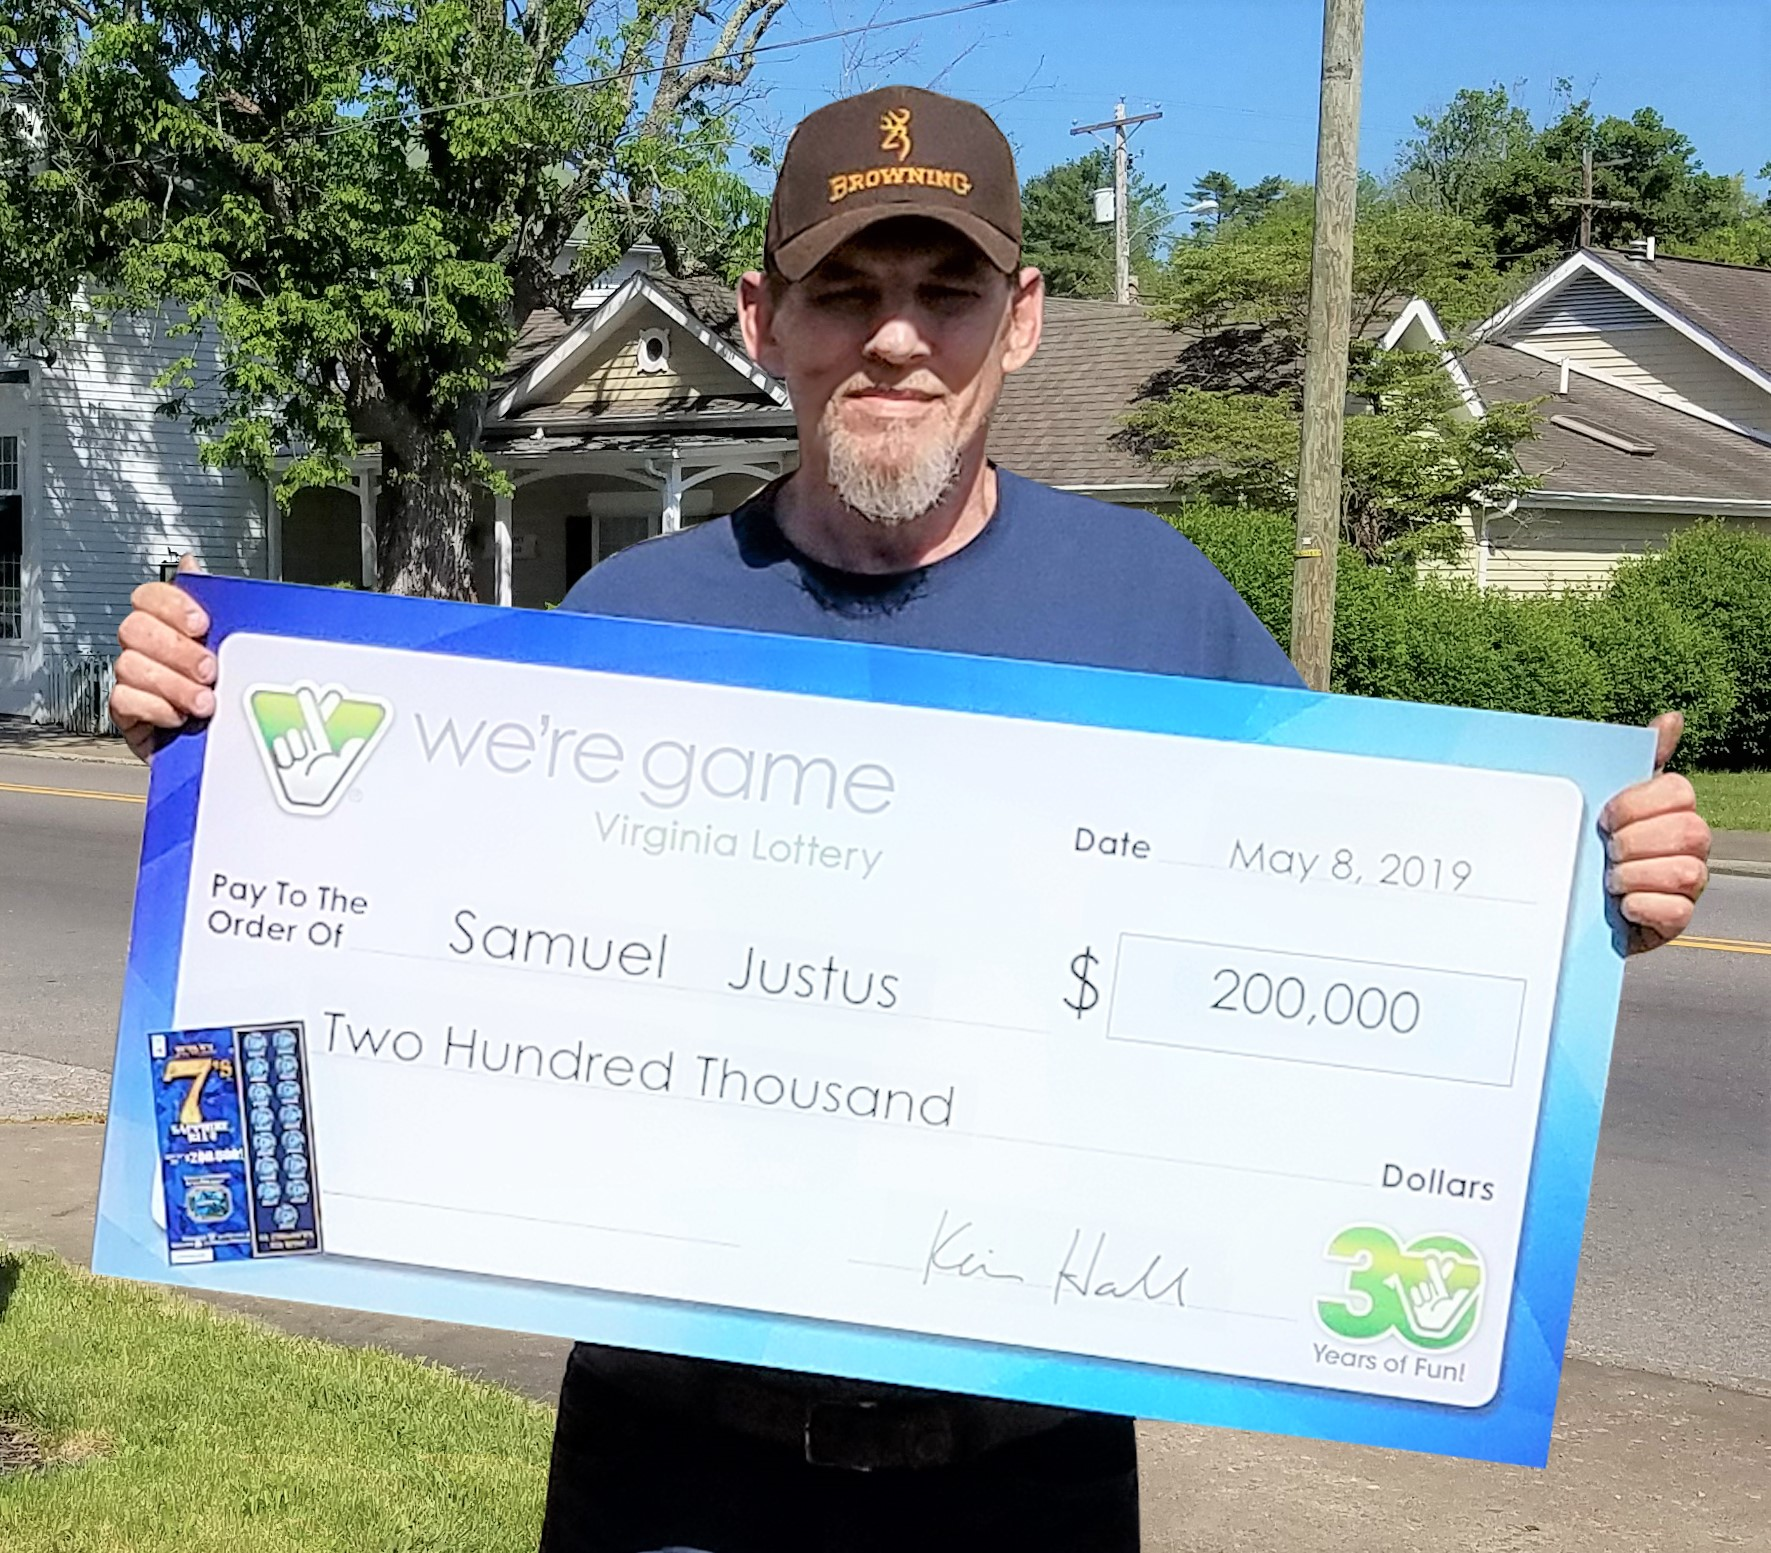 Three weeks after heart surgery, Grundy man wins $200,000 in lottery